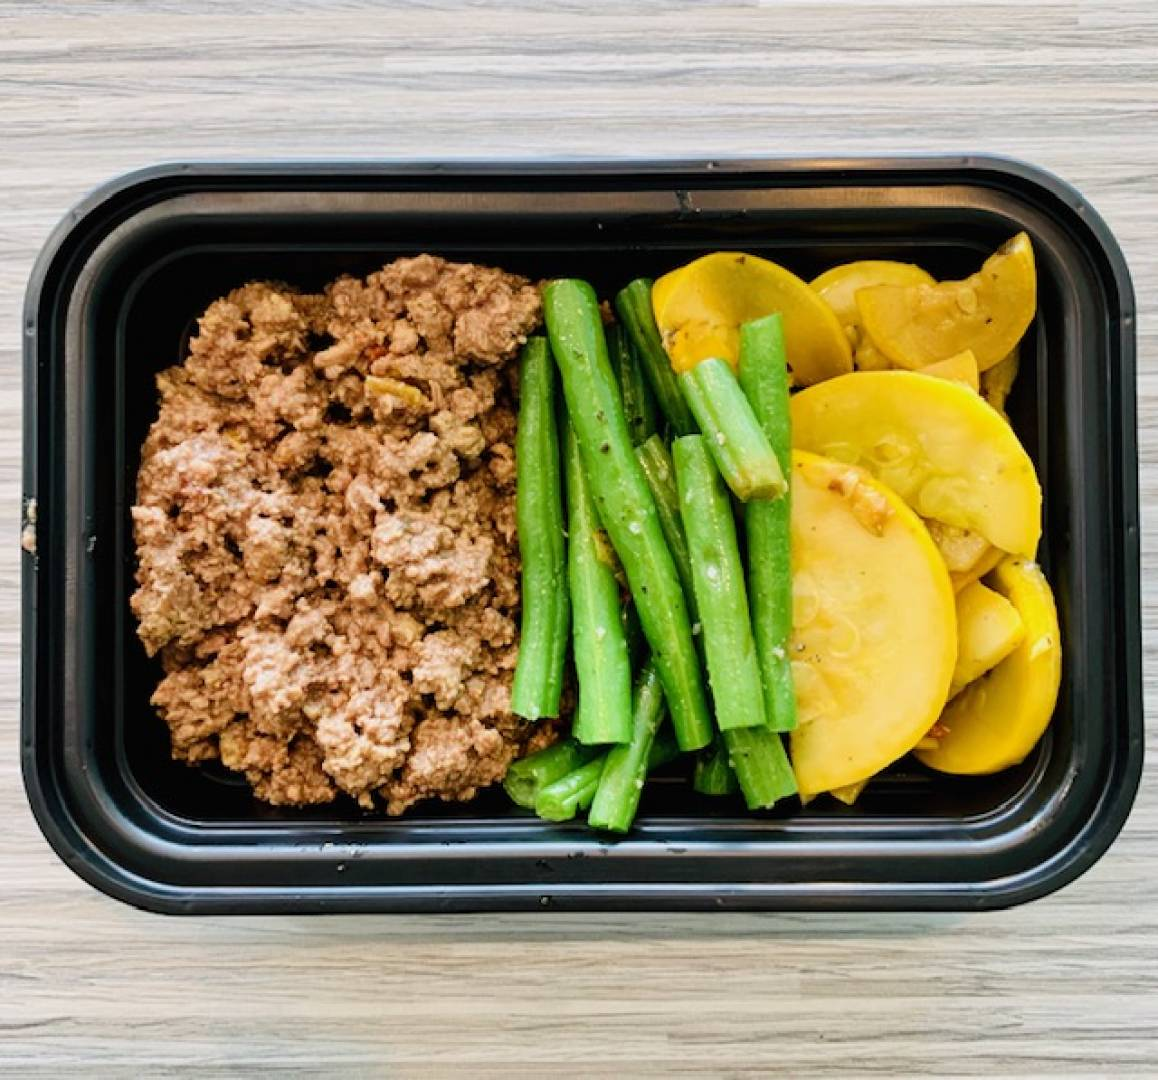 Ground Beef, Green Beans and Squash